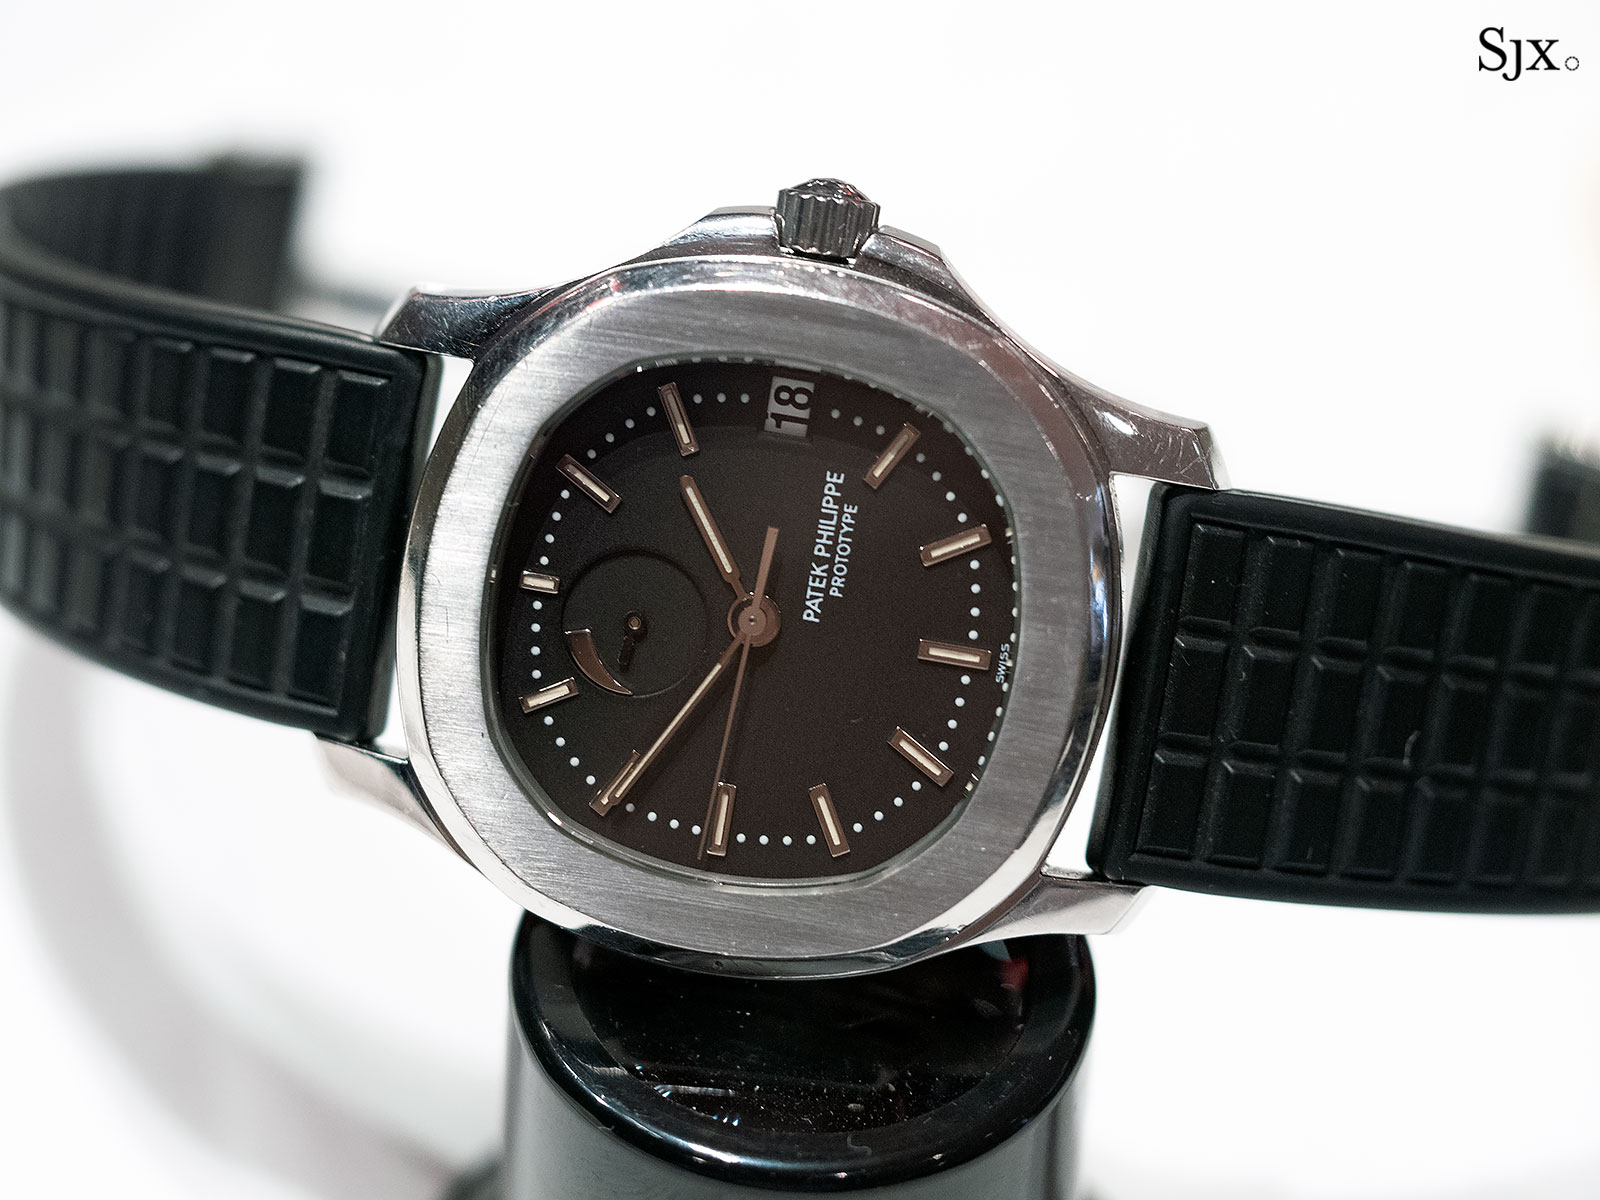 patek philippe aquanaut prototype comet power reserve 2